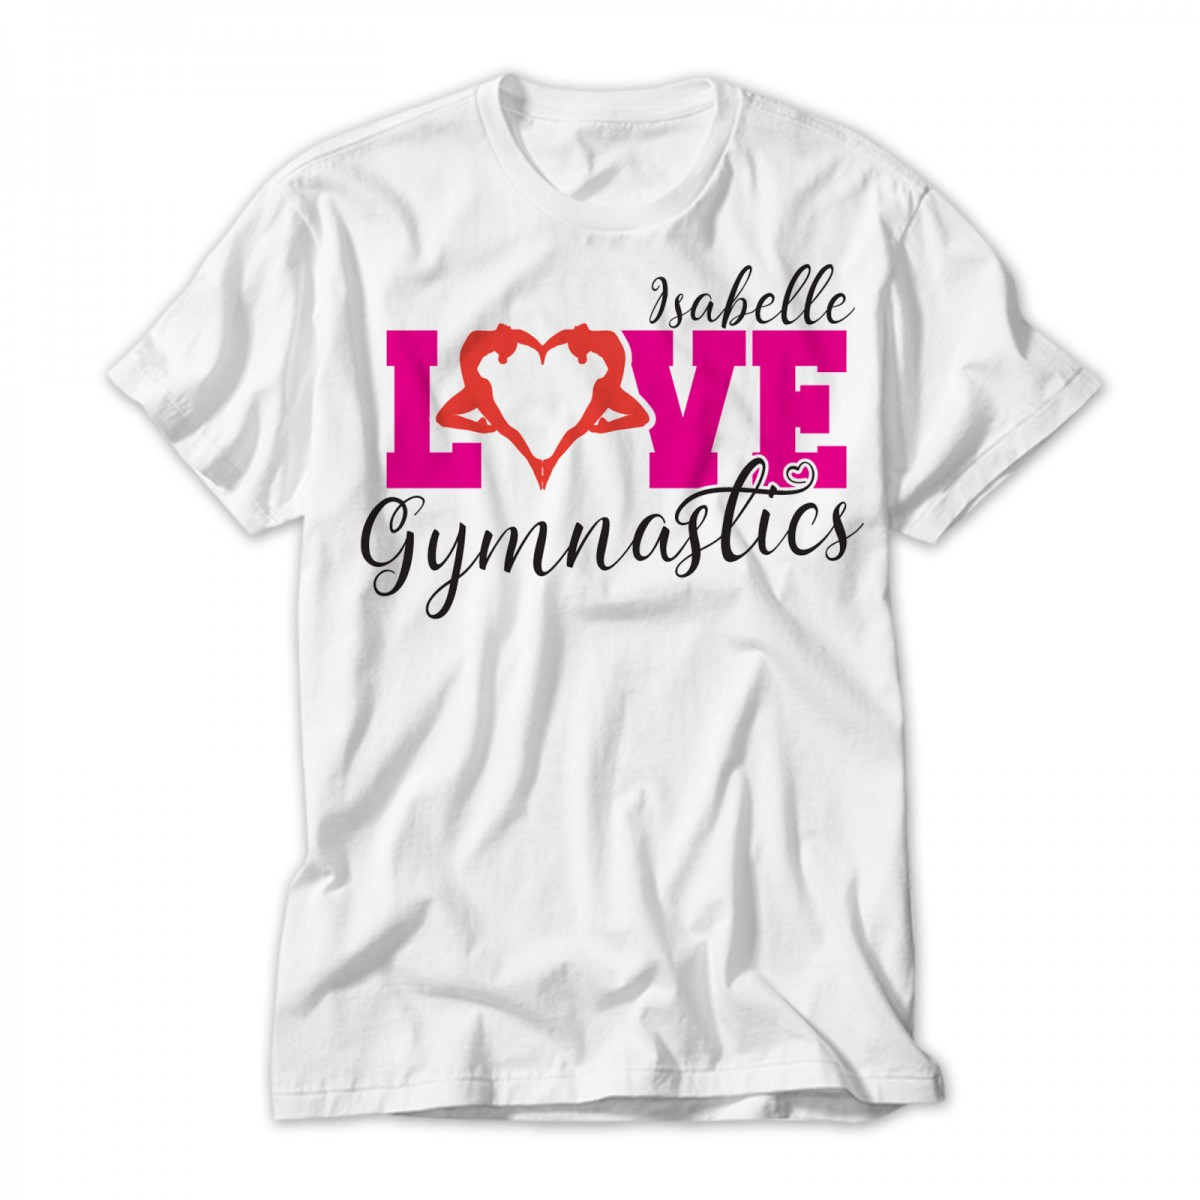 Love gymnastics design stylish gymnast silhouette forms Gymnastics t shirt designs